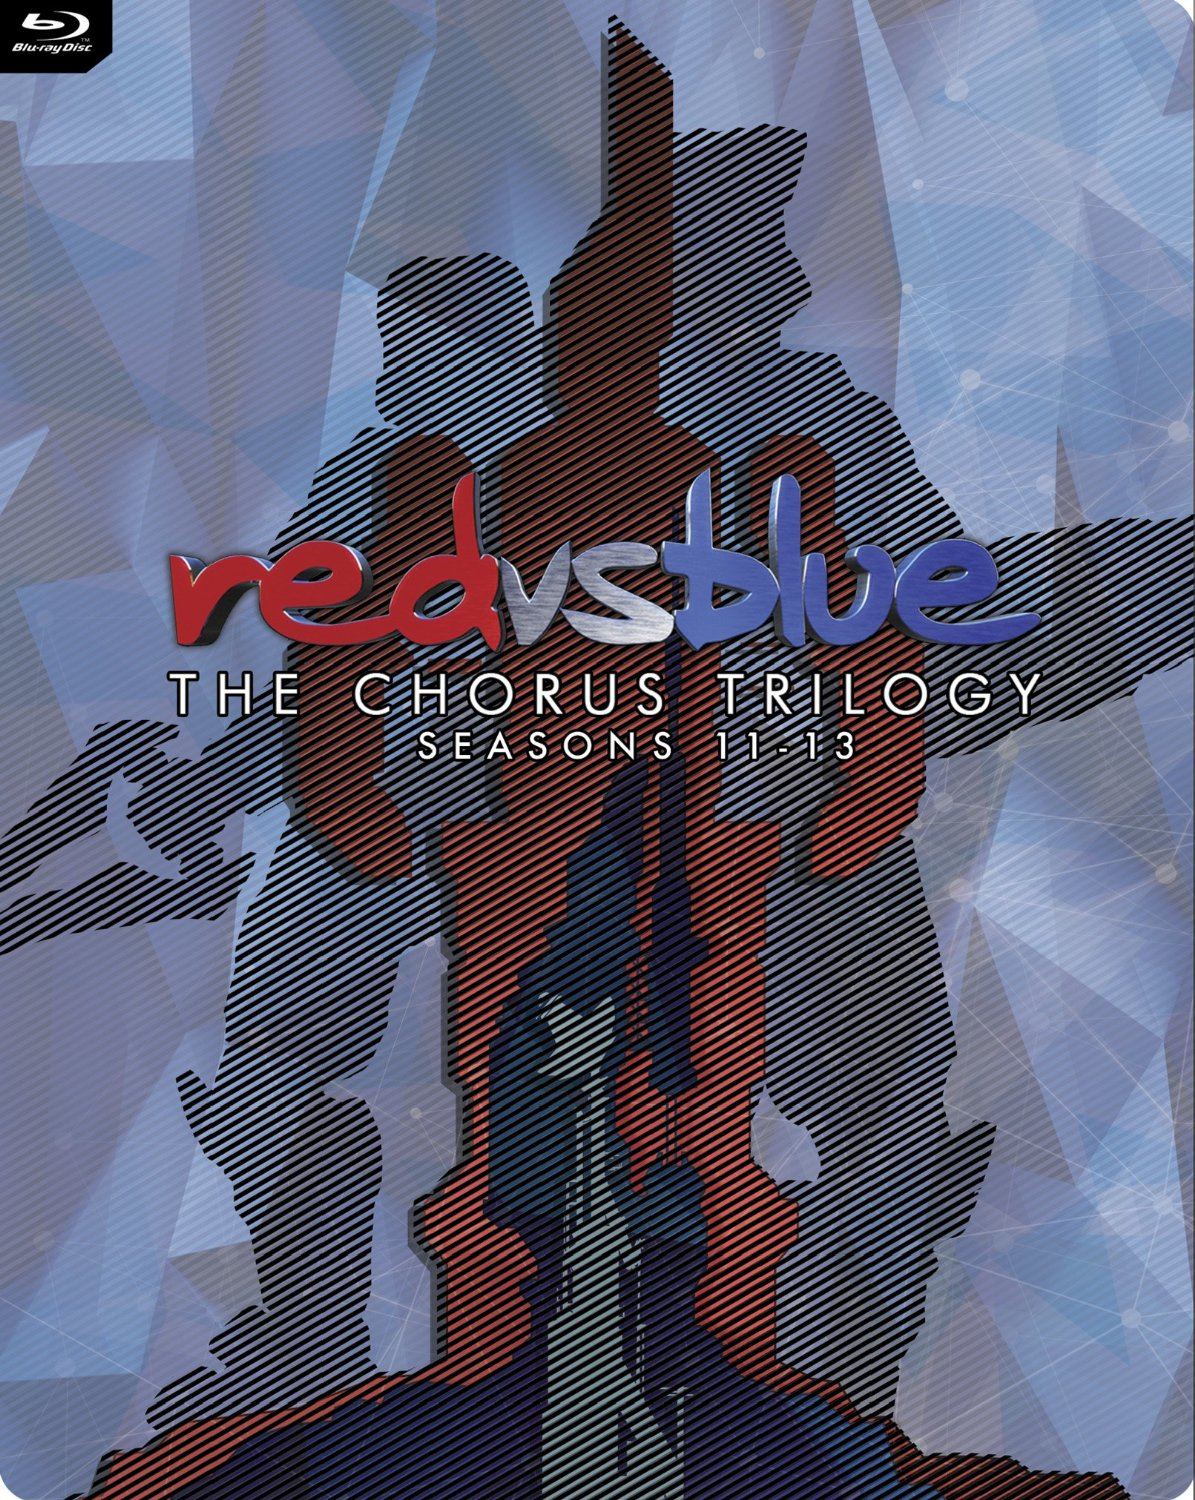 red vs blue chorus trilogy cover